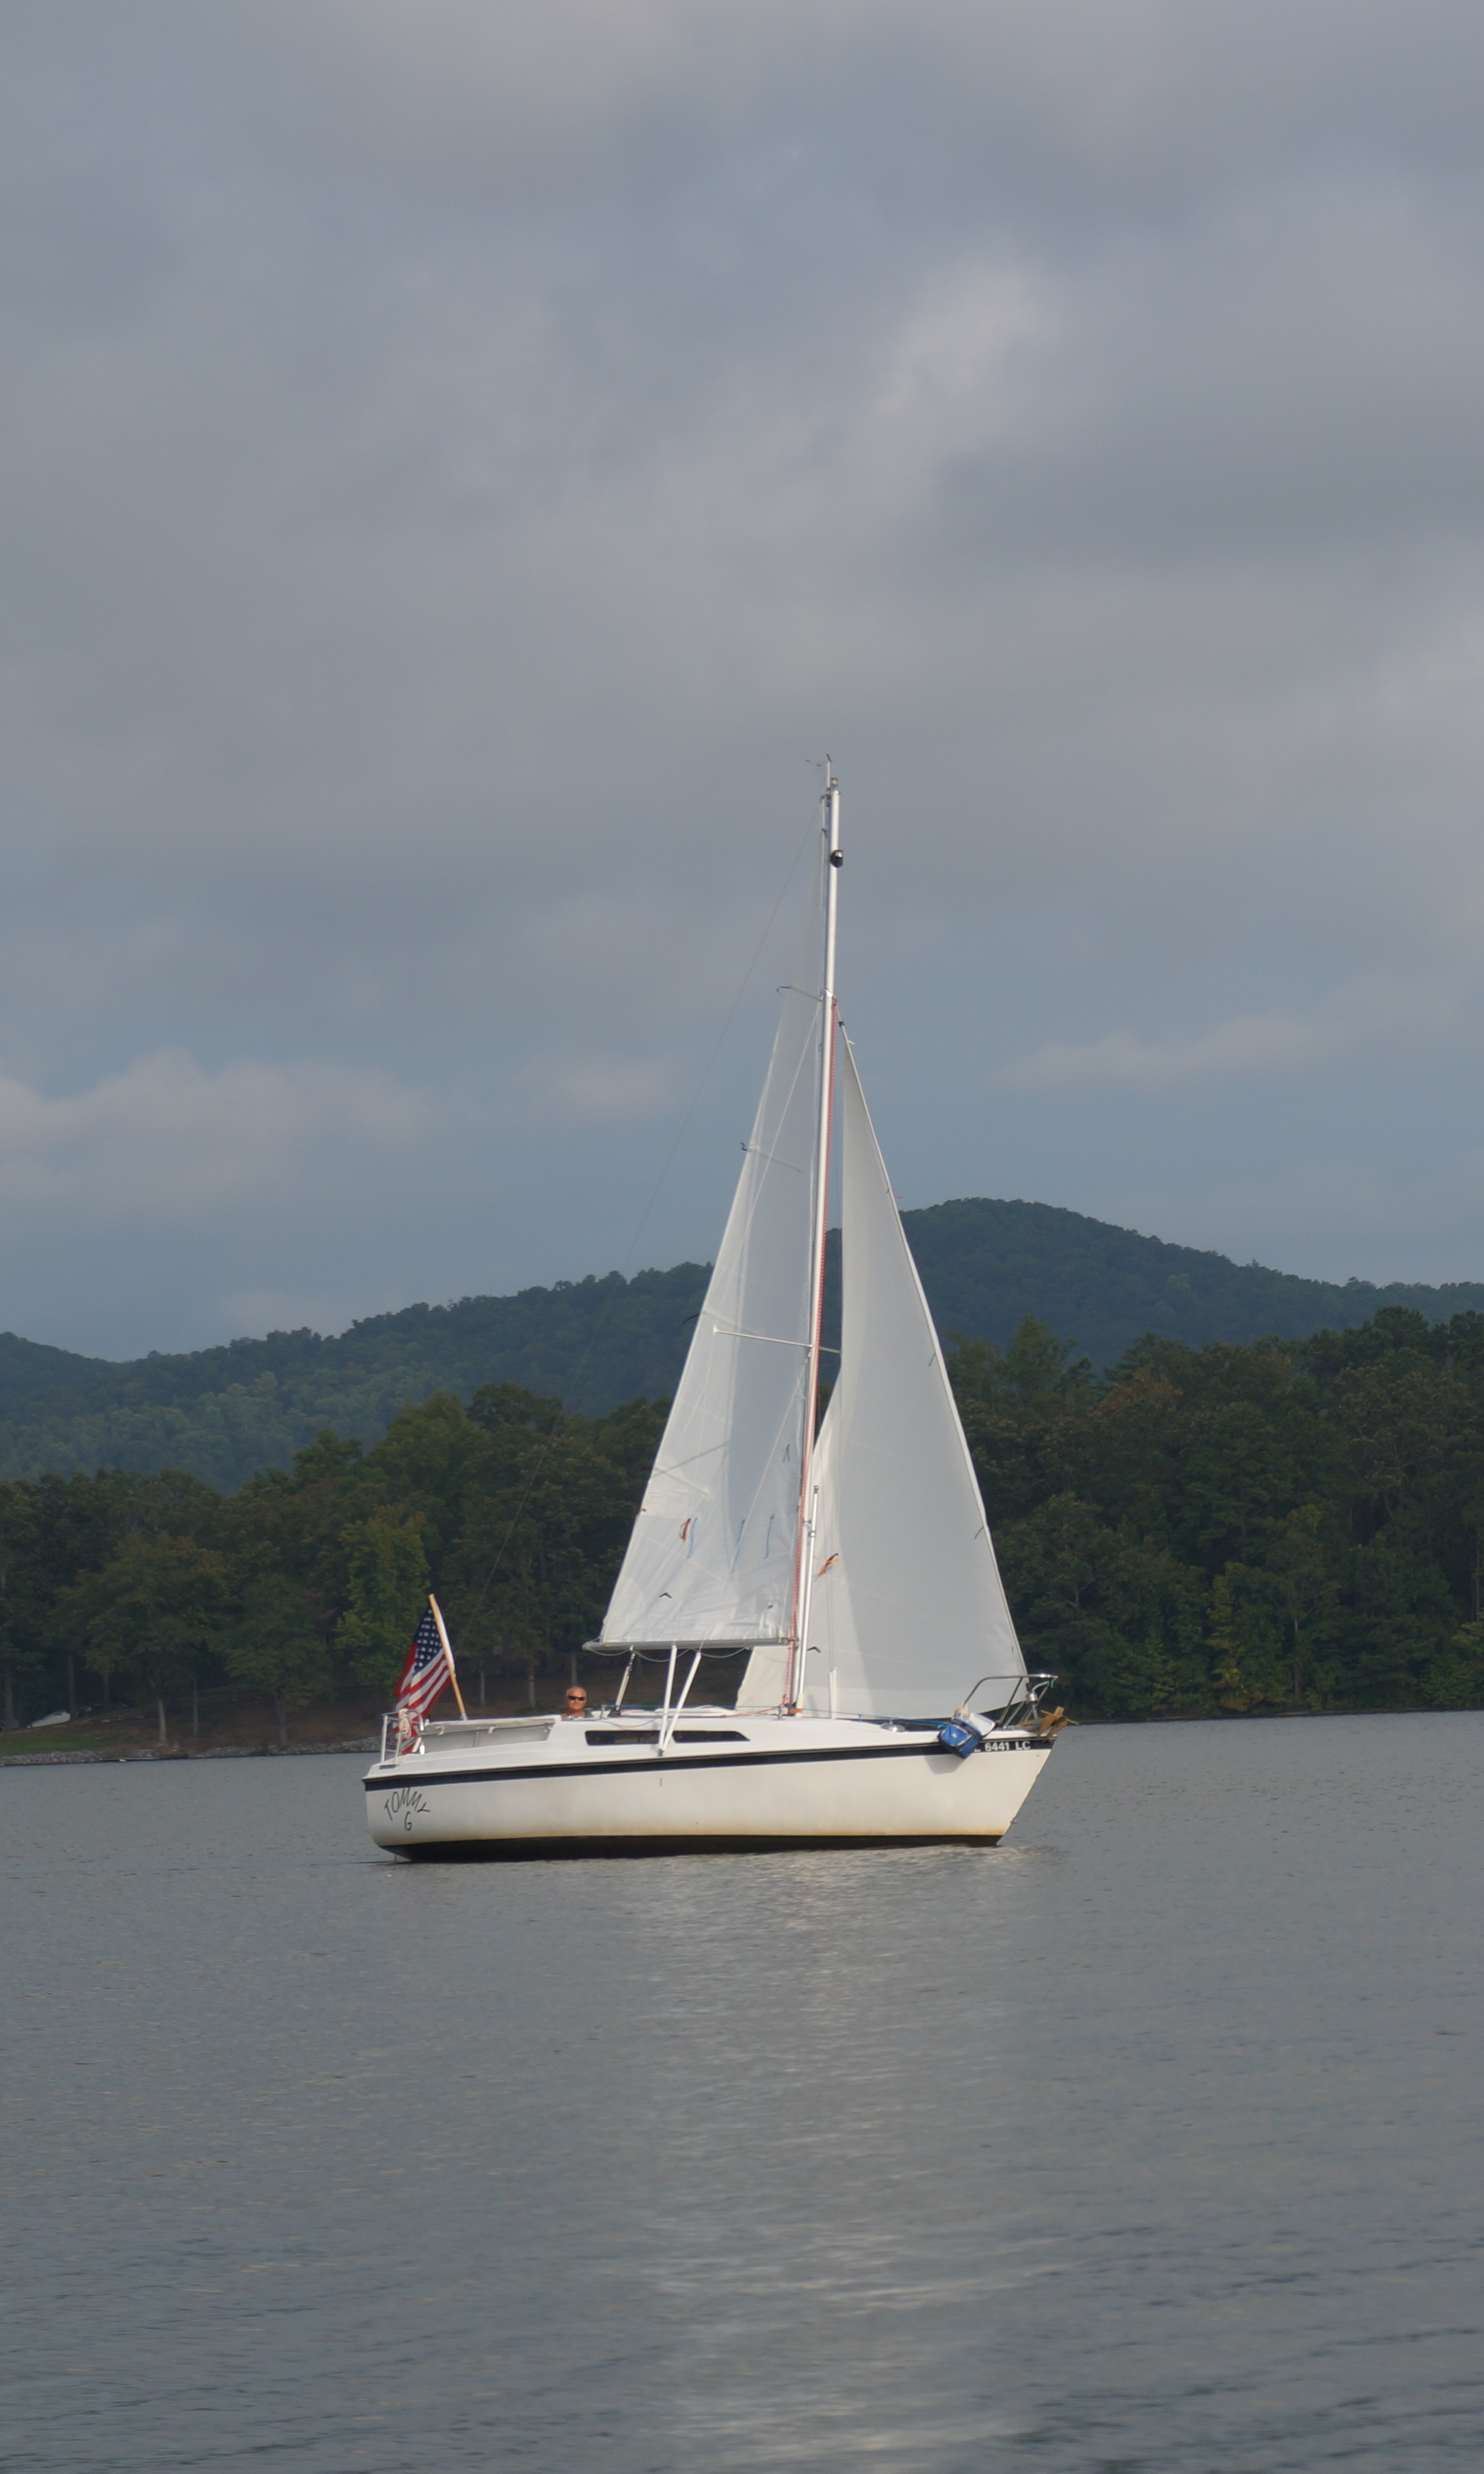 https://alabama-travel.s3.amazonaws.com/partners-uploads/photo/image/58f67be0b3b361209a00008f/boat.jpg